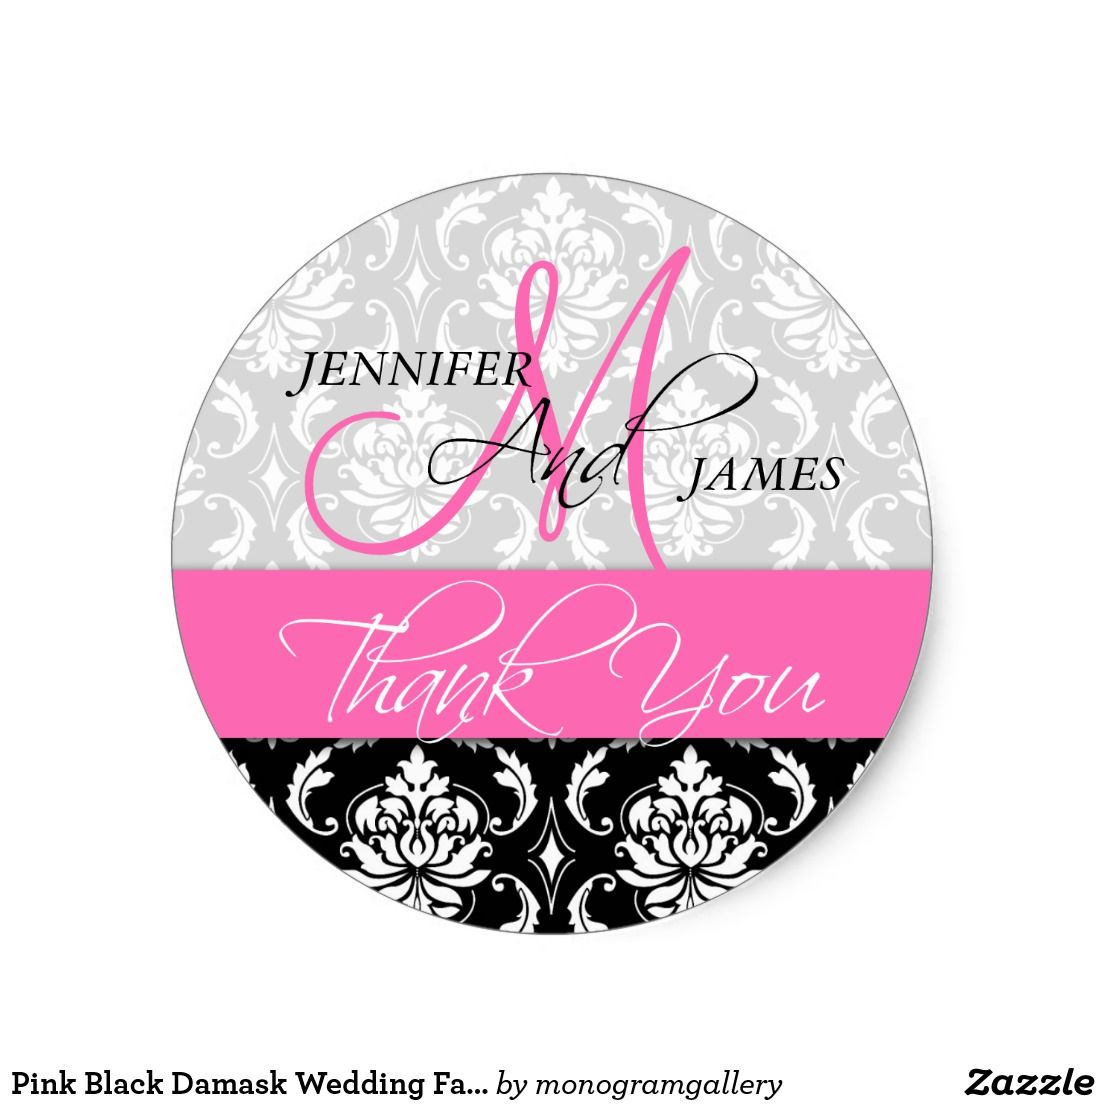 Pink Black Damask Wedding Favor Thank You Sticker | Favors, Wedding ...